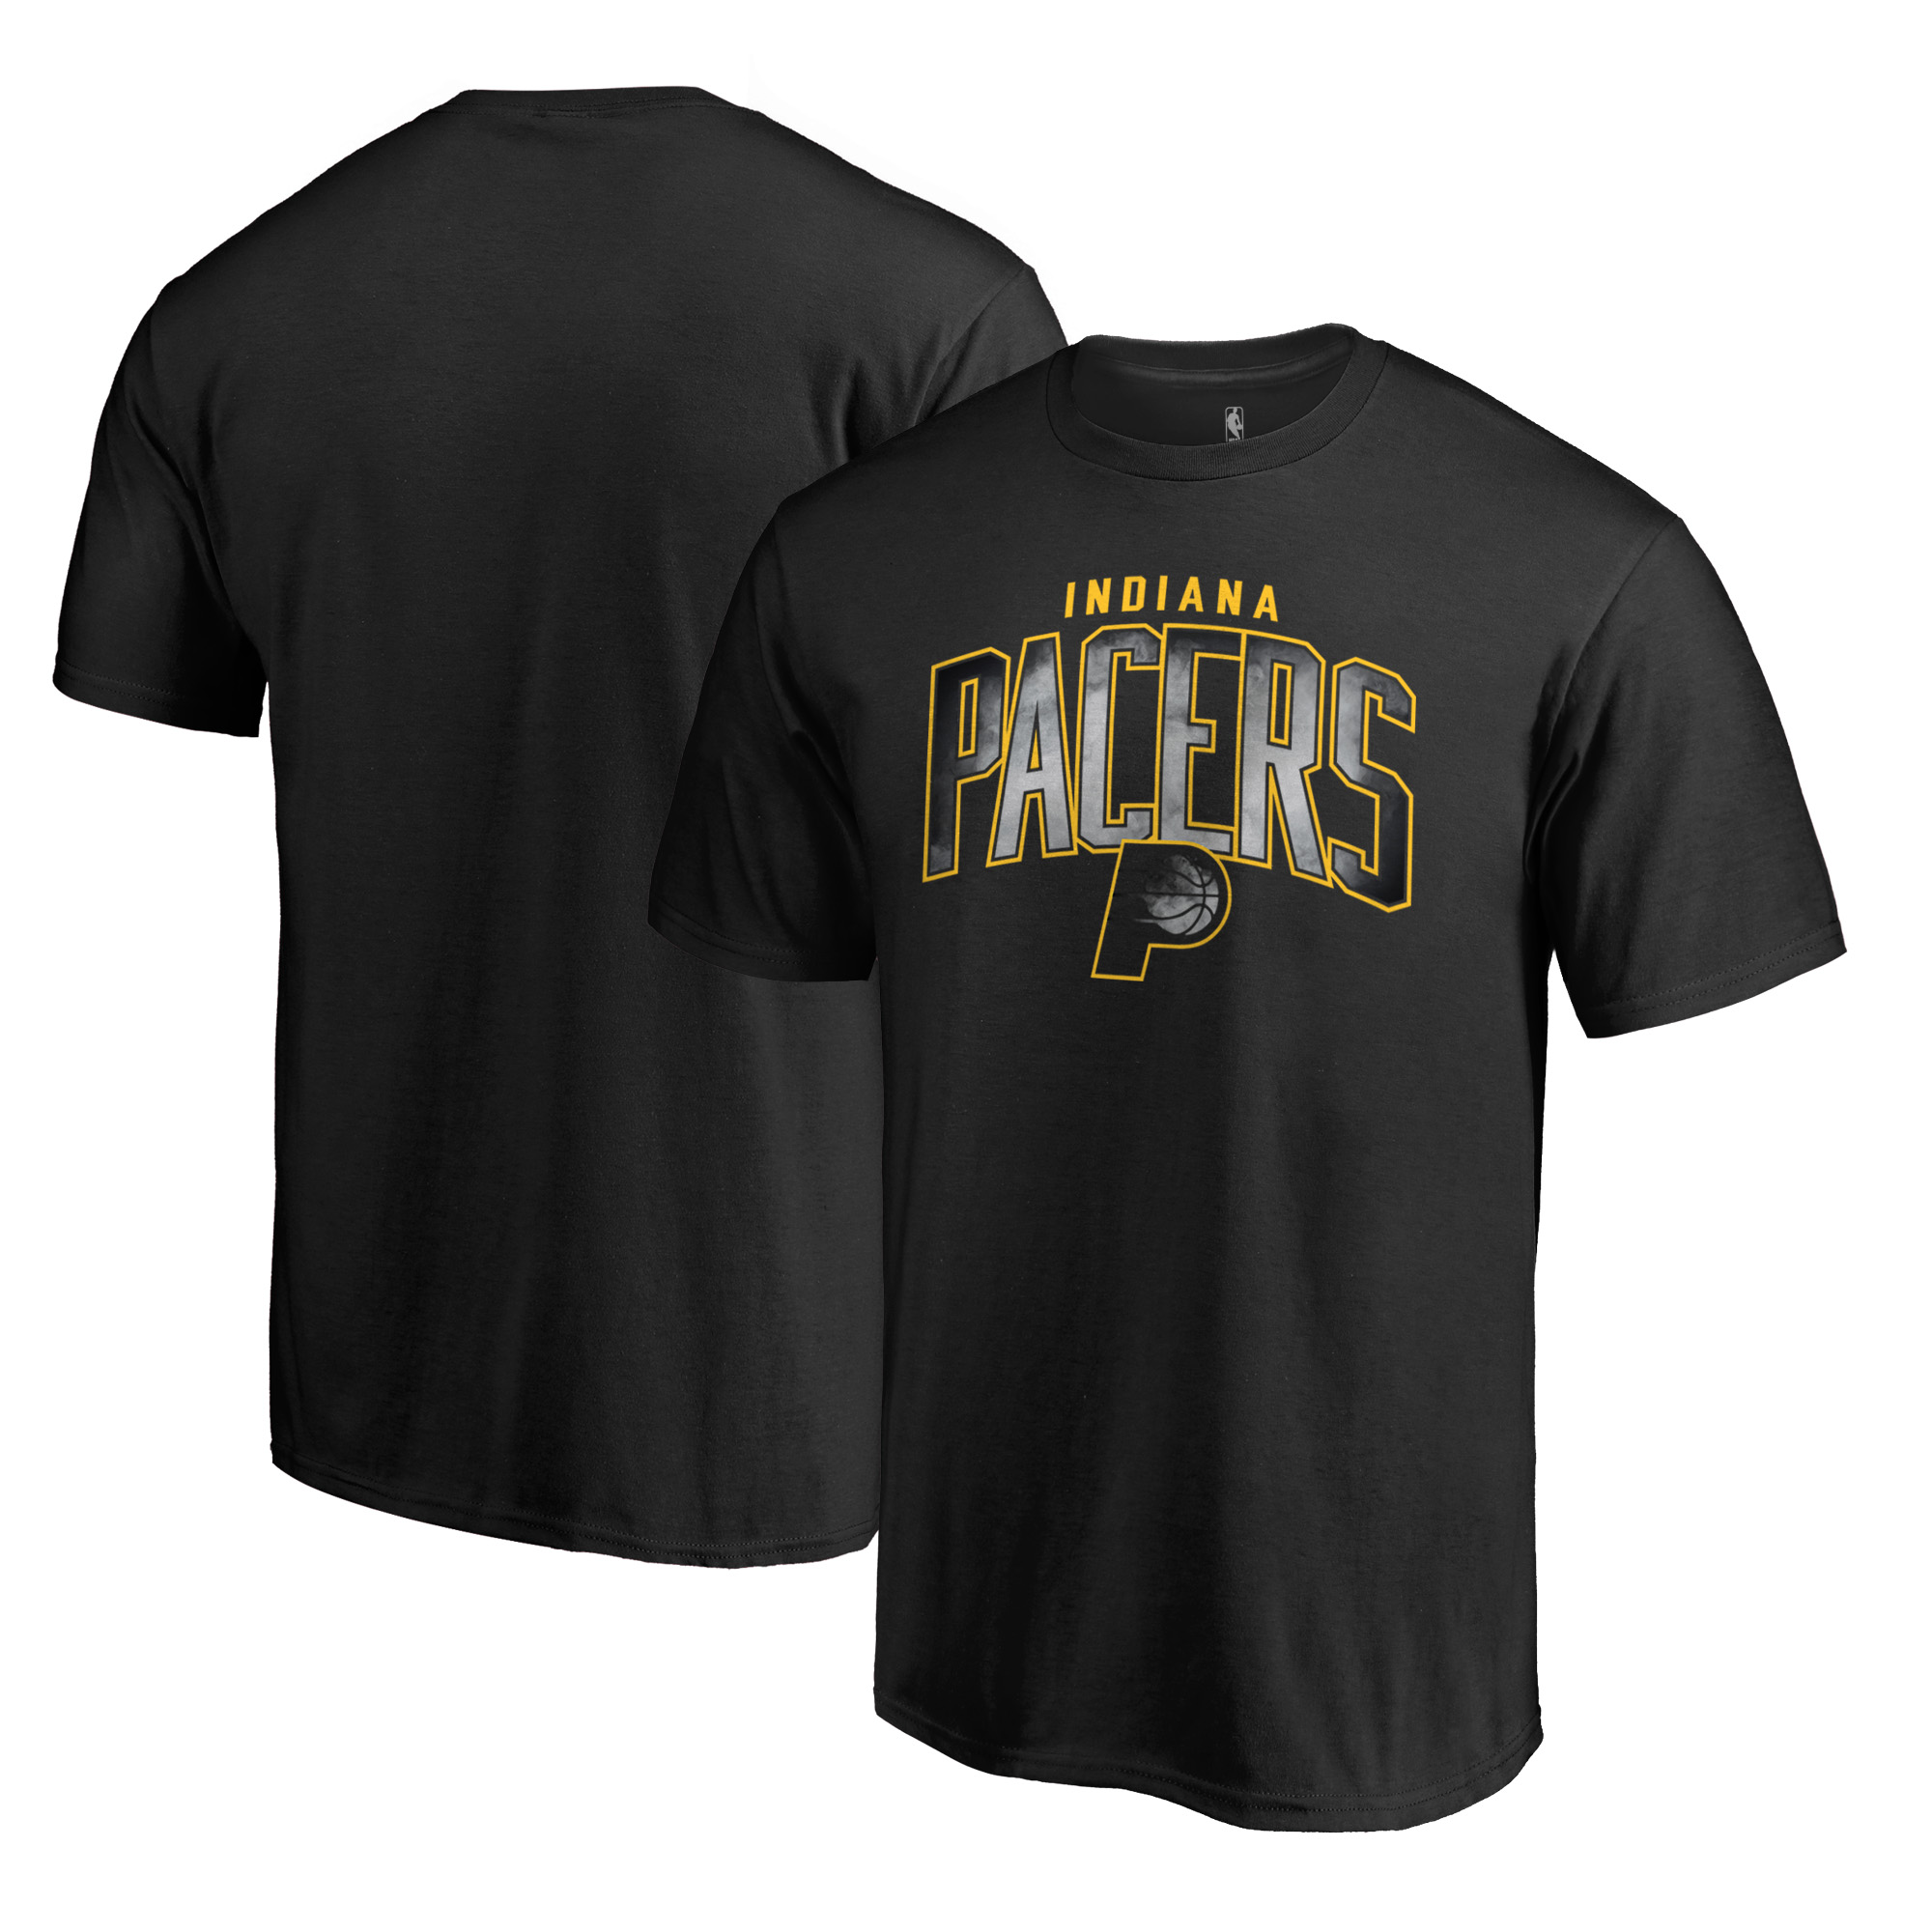 Indiana Pacers Fanatics Branded Arch Smoke T-Shirt - Black